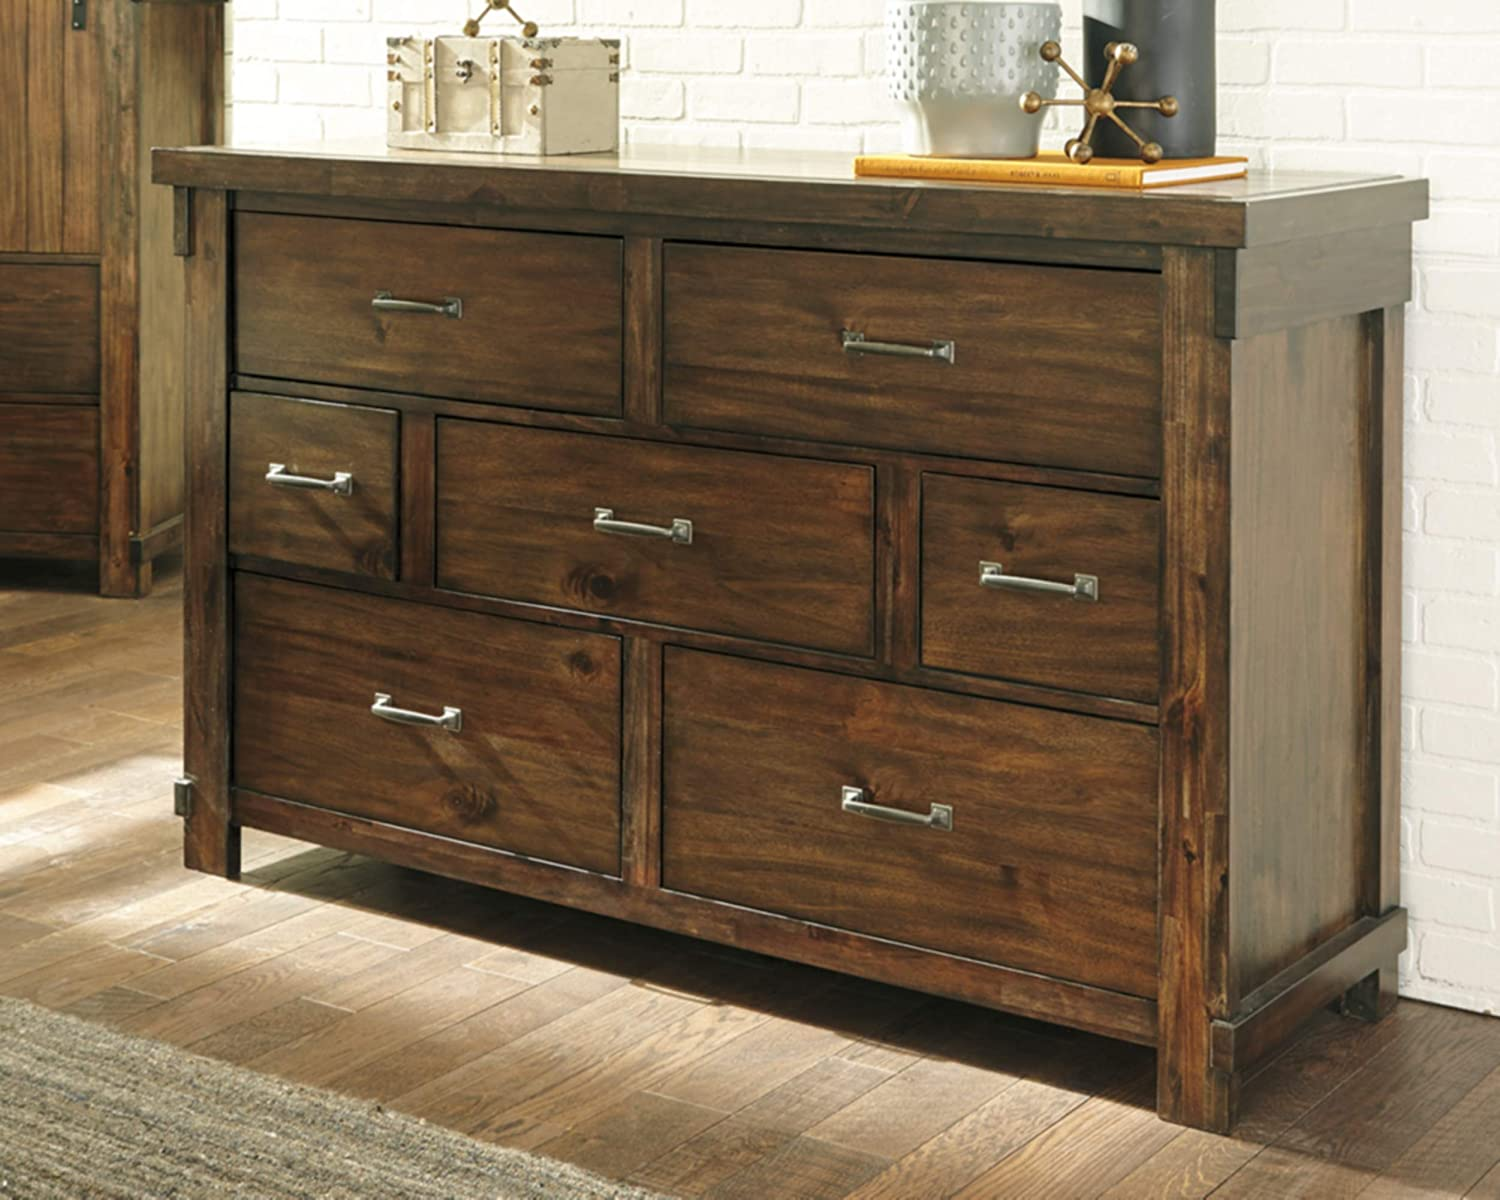 Ashley Furniture Signature Design – Lakeleigh Dresser – Casual – 7 Drawers – Rustic Brown Finish – Dark Zinc Hardware